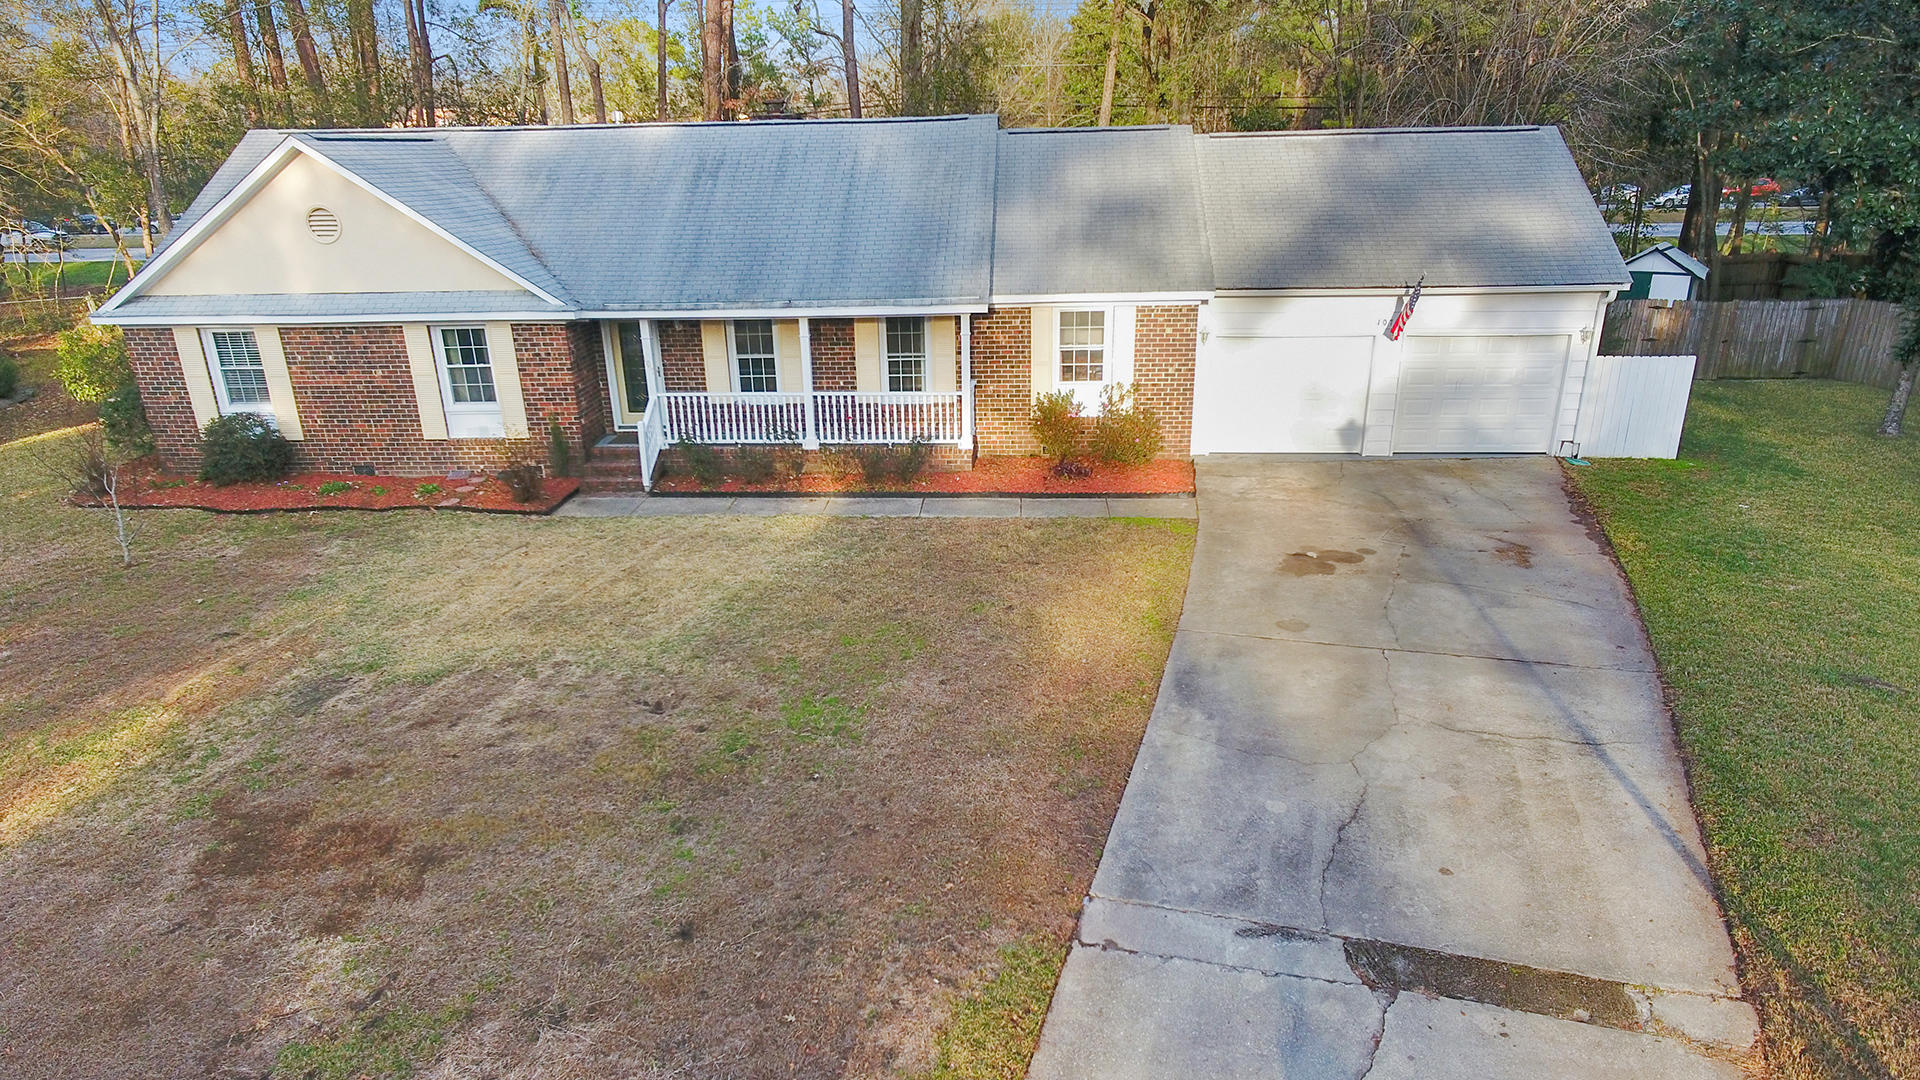 Kings Grant Homes For Sale - 107 Millbrook, Summerville, SC - 4